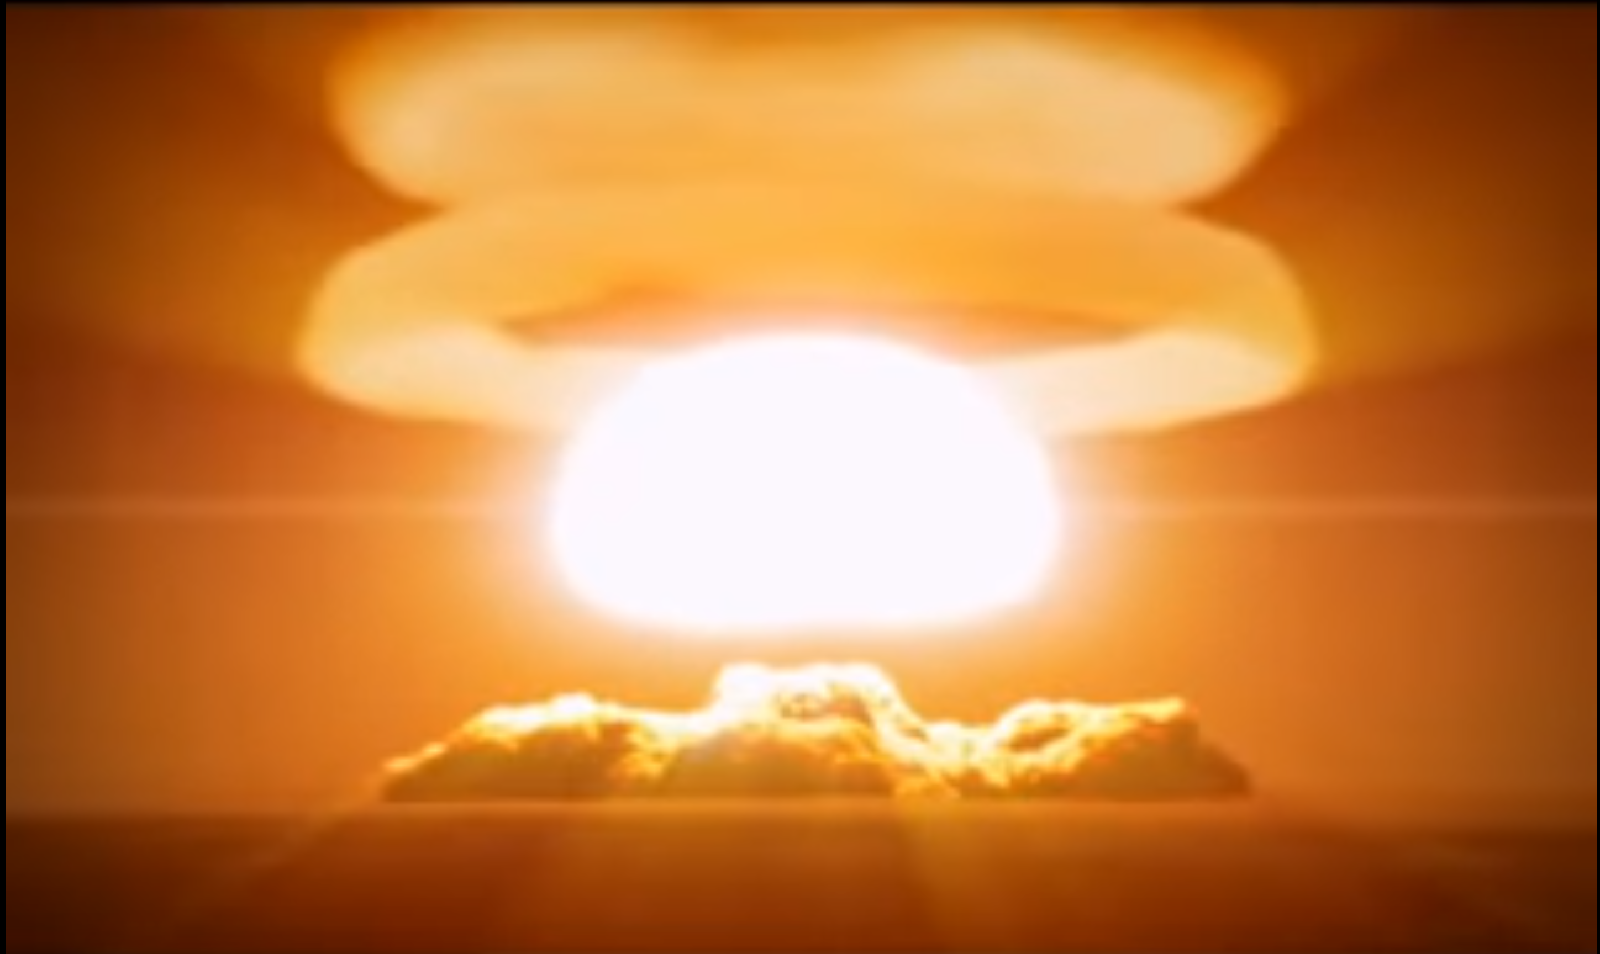 Russia's Tsar Nuclear Bomb Was the Biggest Ever (But Useless in War)